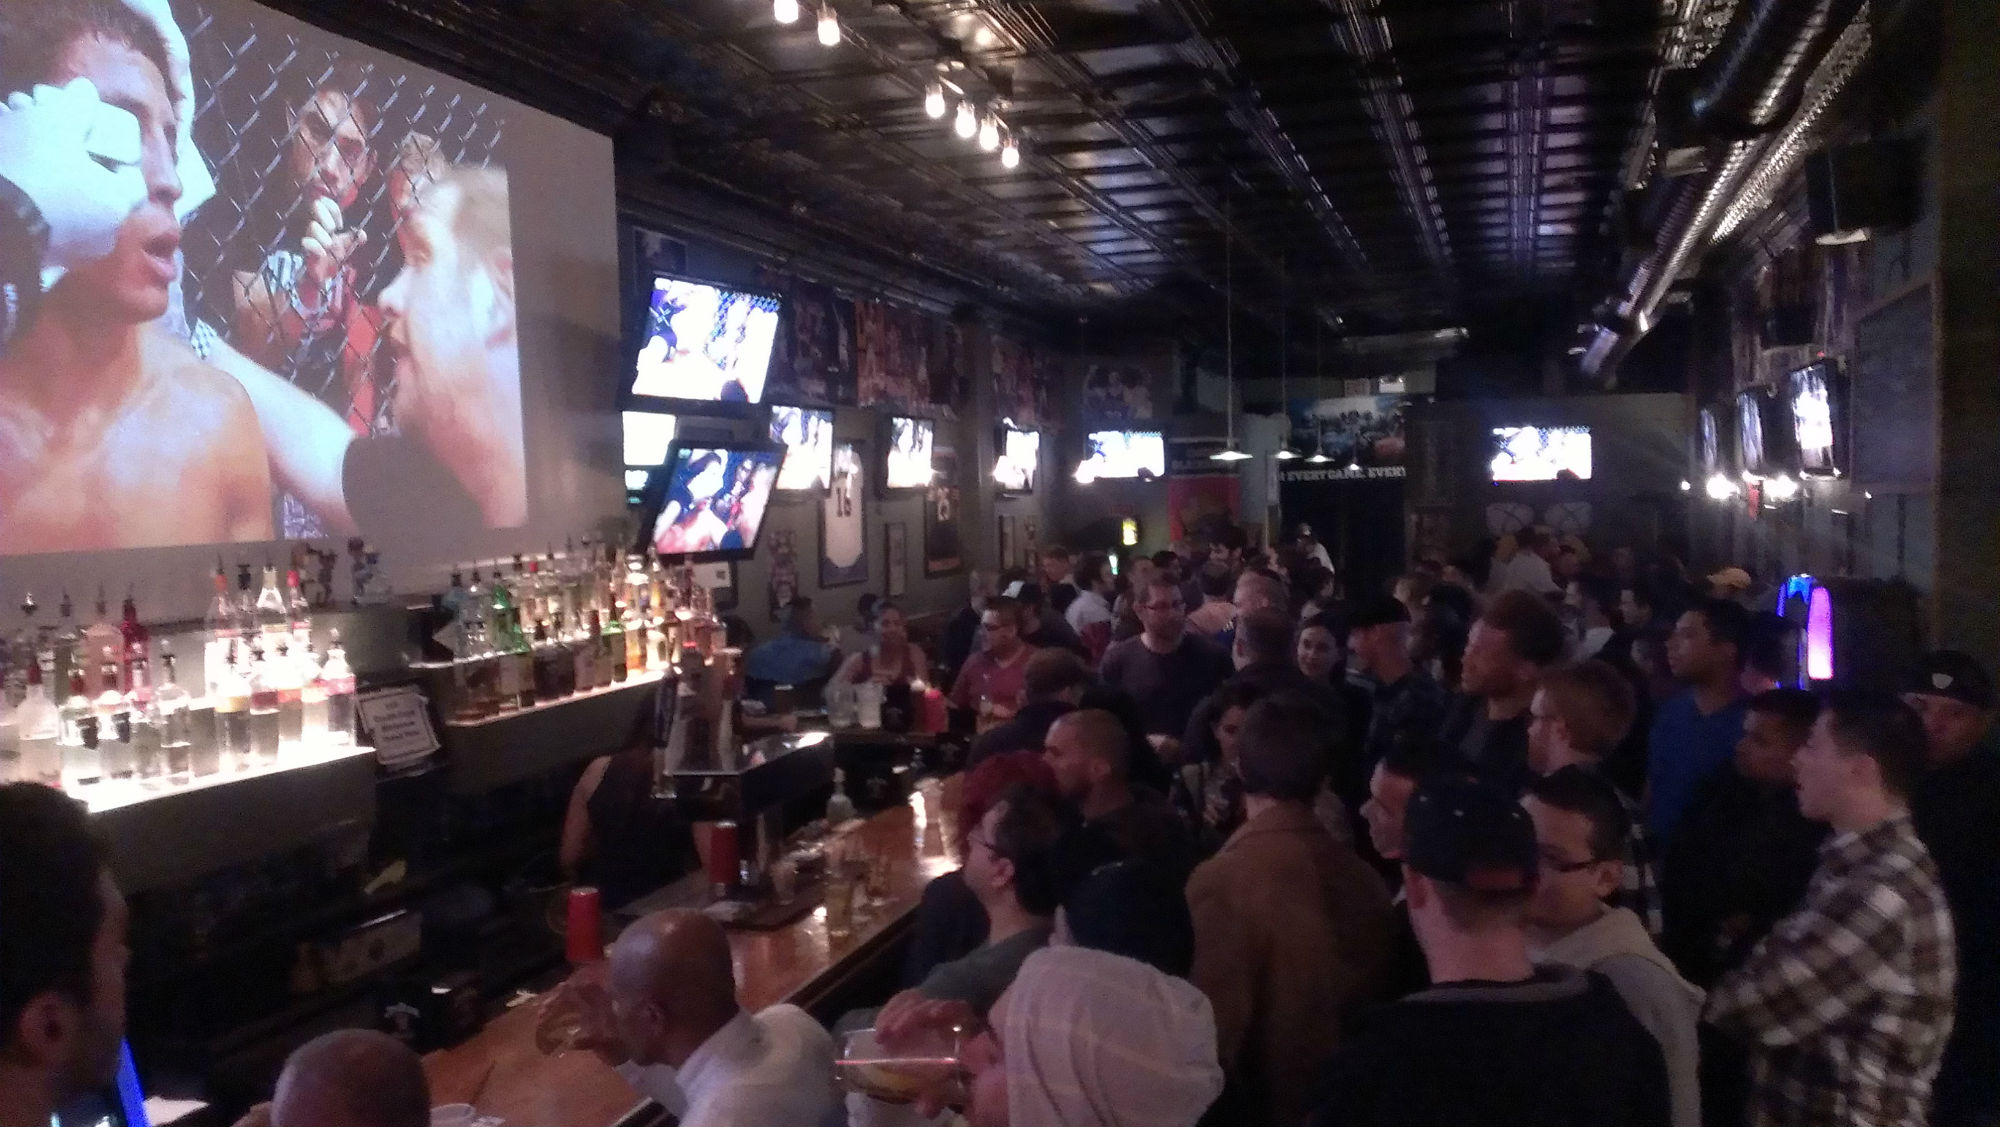 Top 5 Sports Bars In Chicago